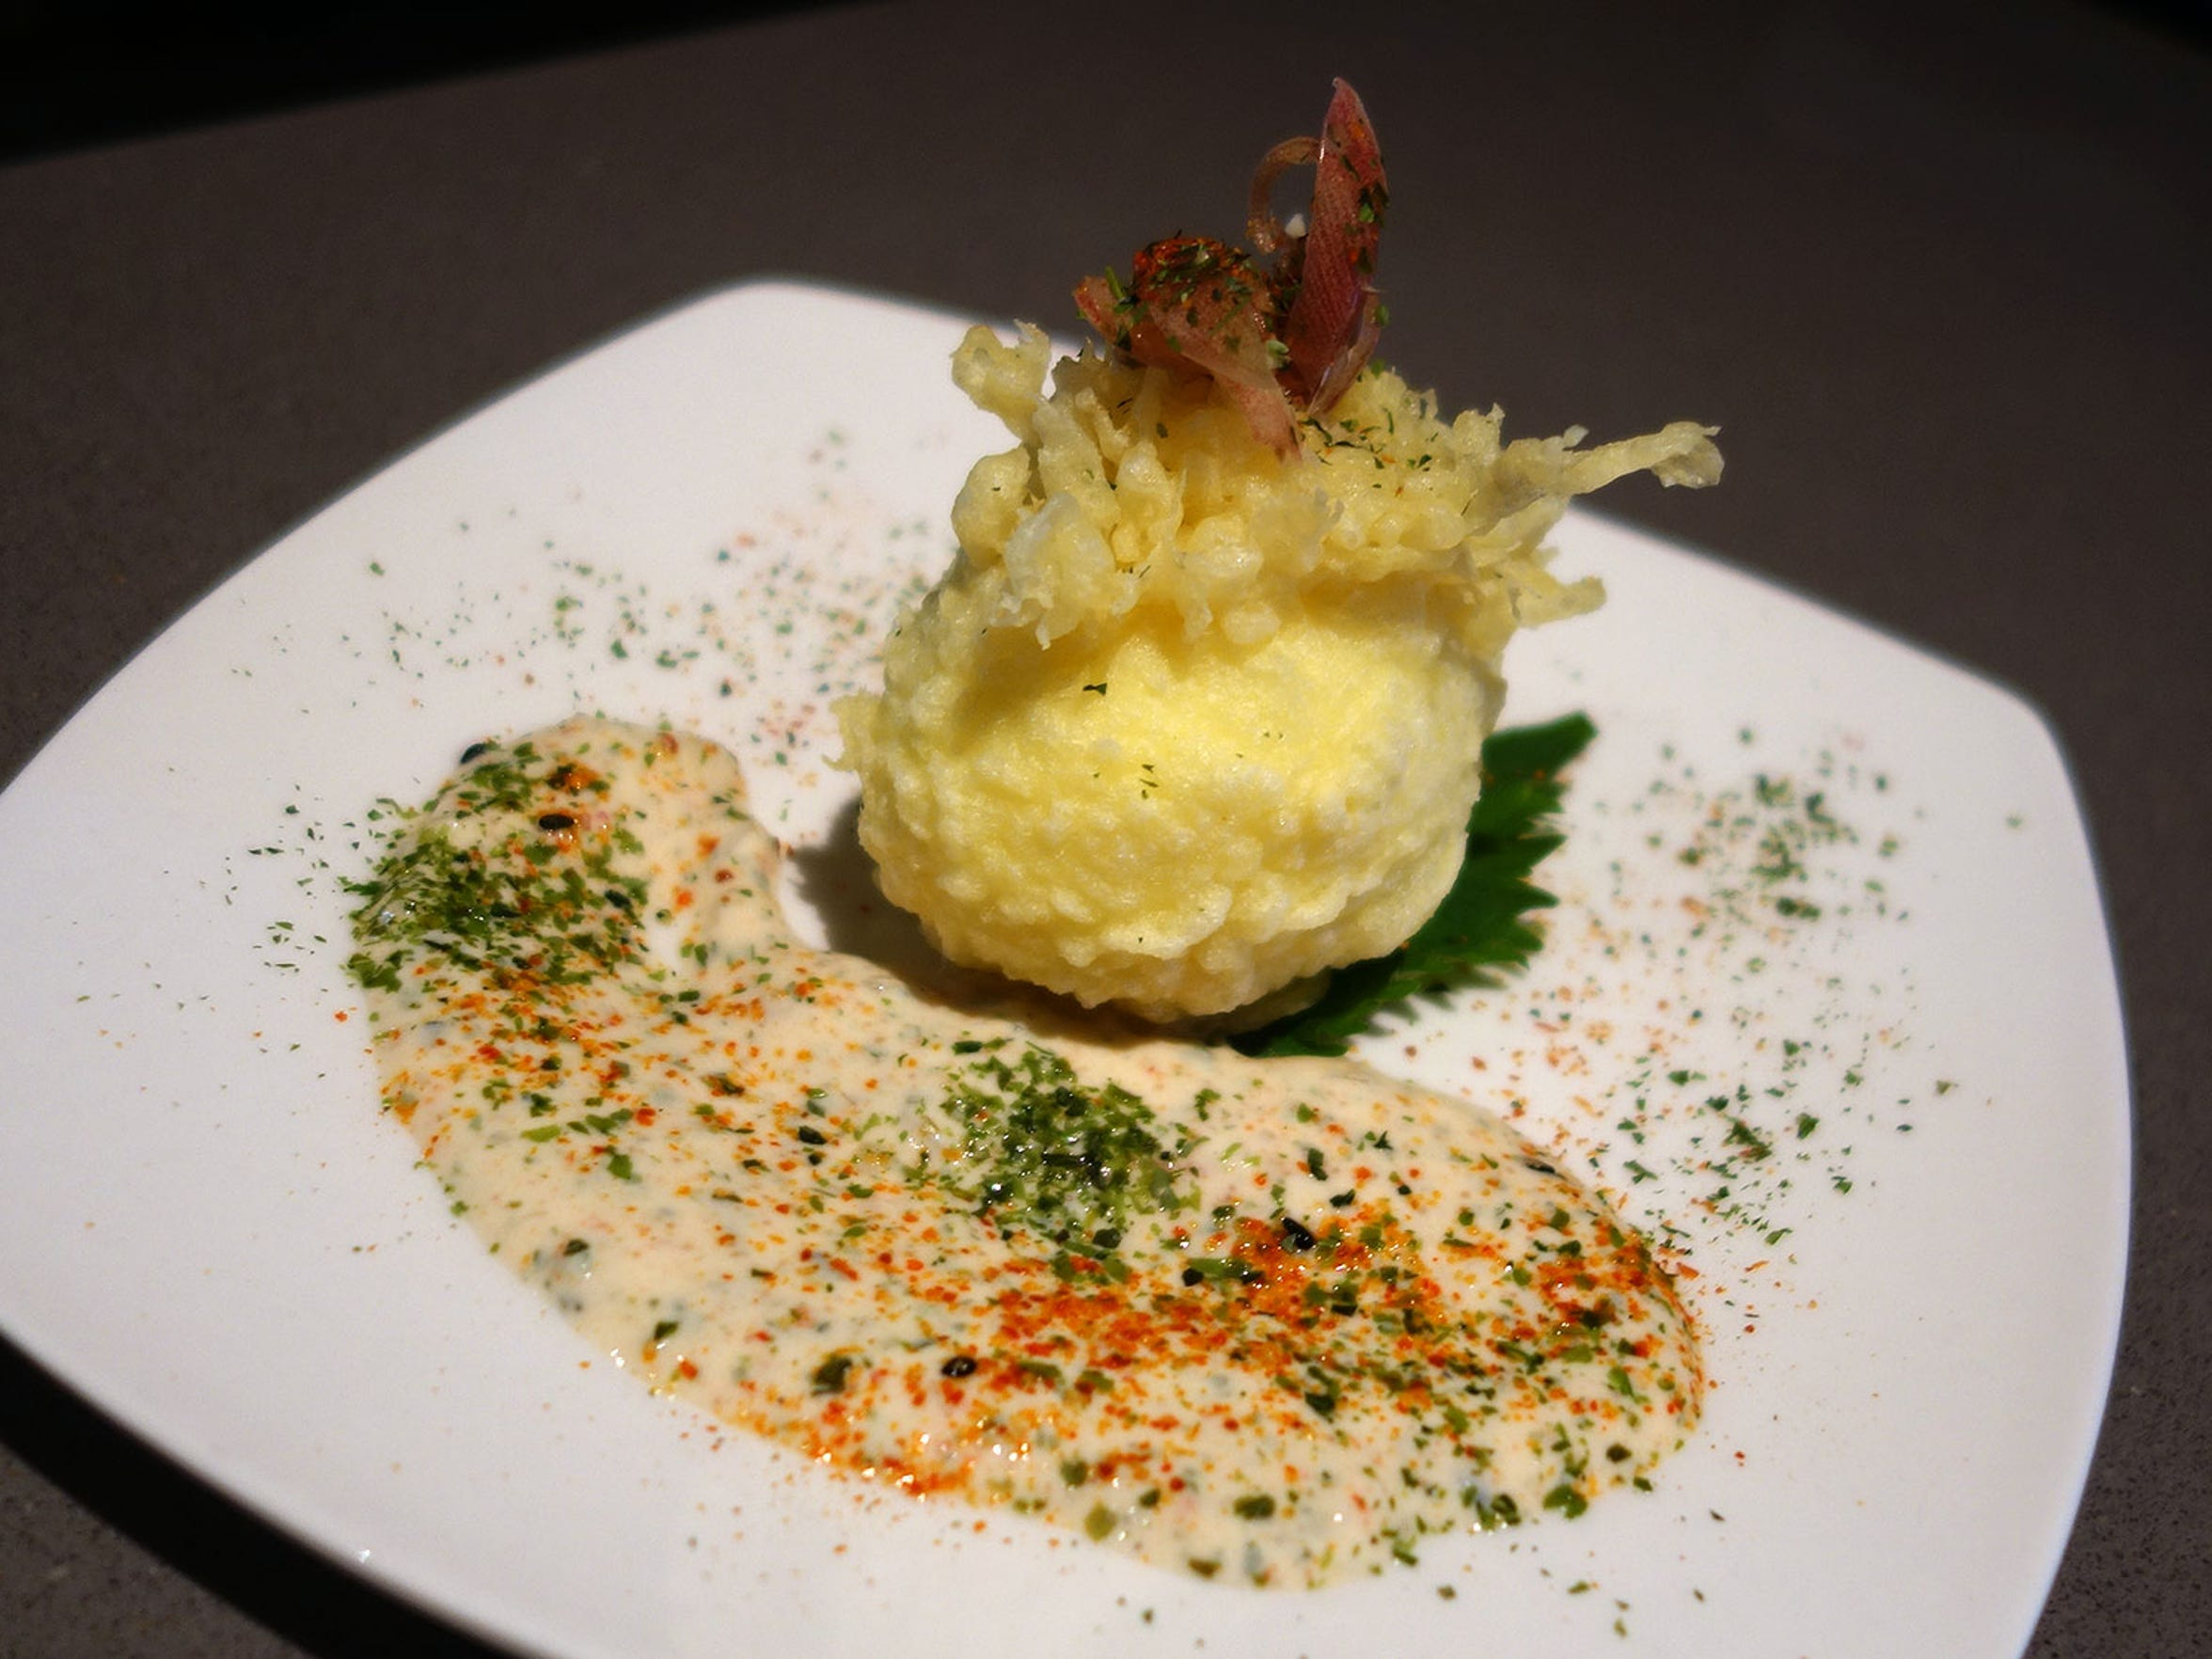 The Hana egg, a tempura-fried poached egg, plated with